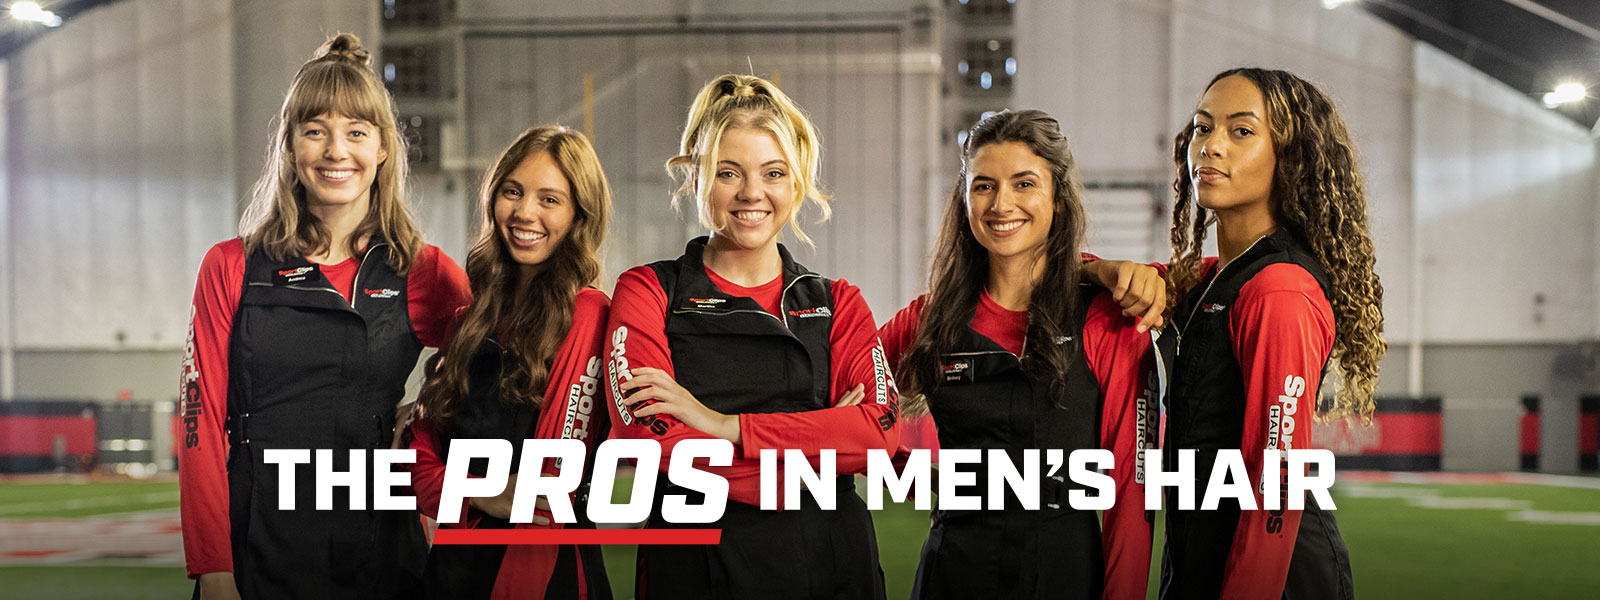 Sport Clips stylists are the pros in mens hair